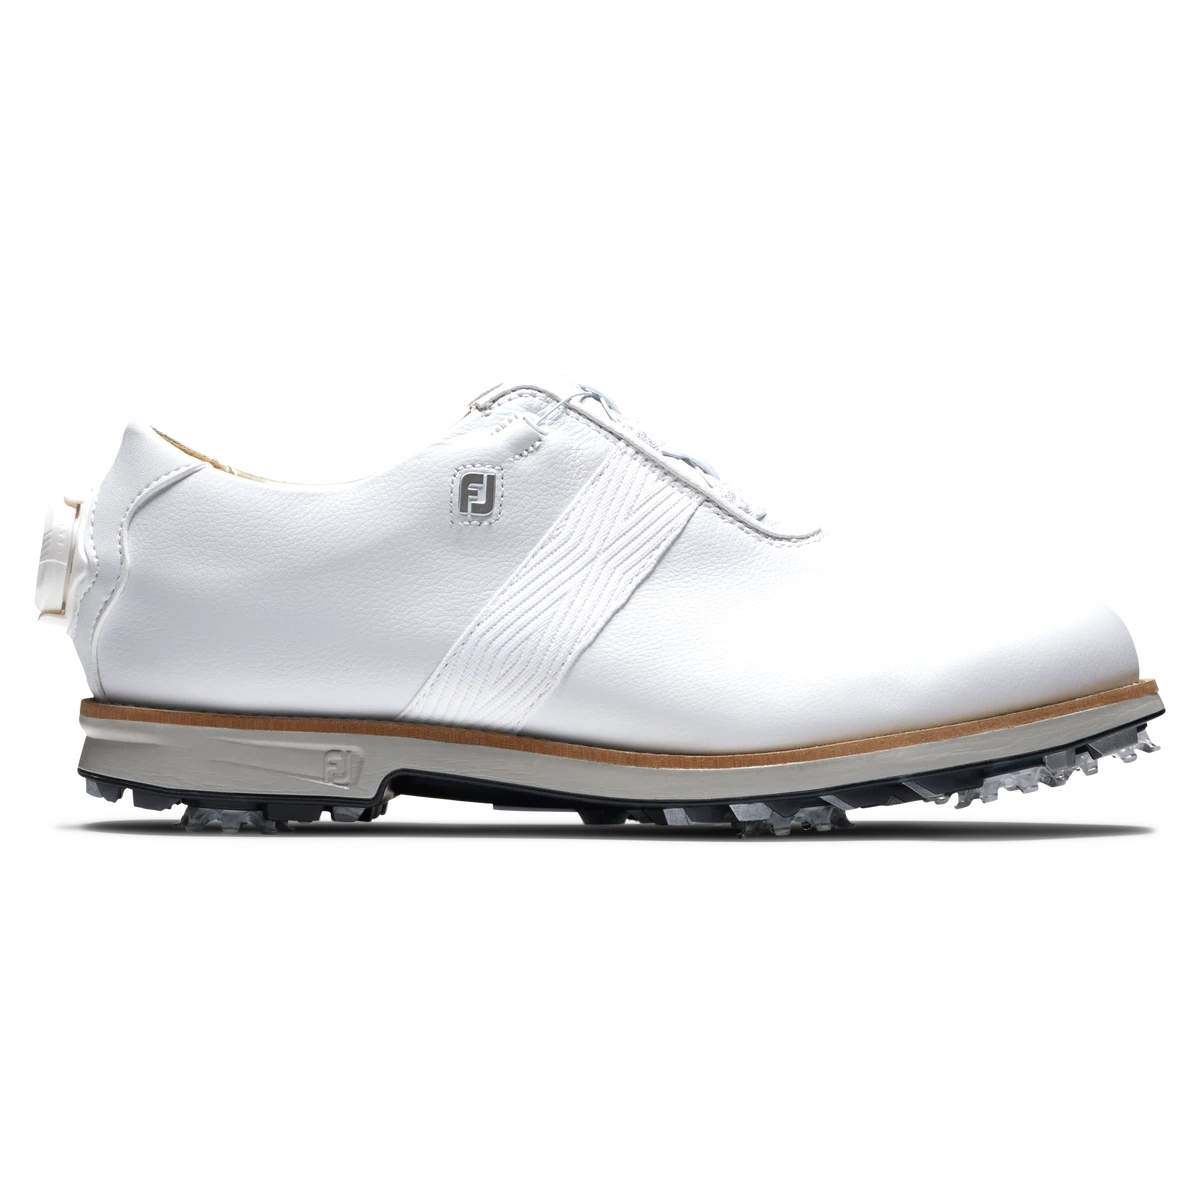 FootJoy Women's Premiere Series BOA Golf Shoe - Style 99022